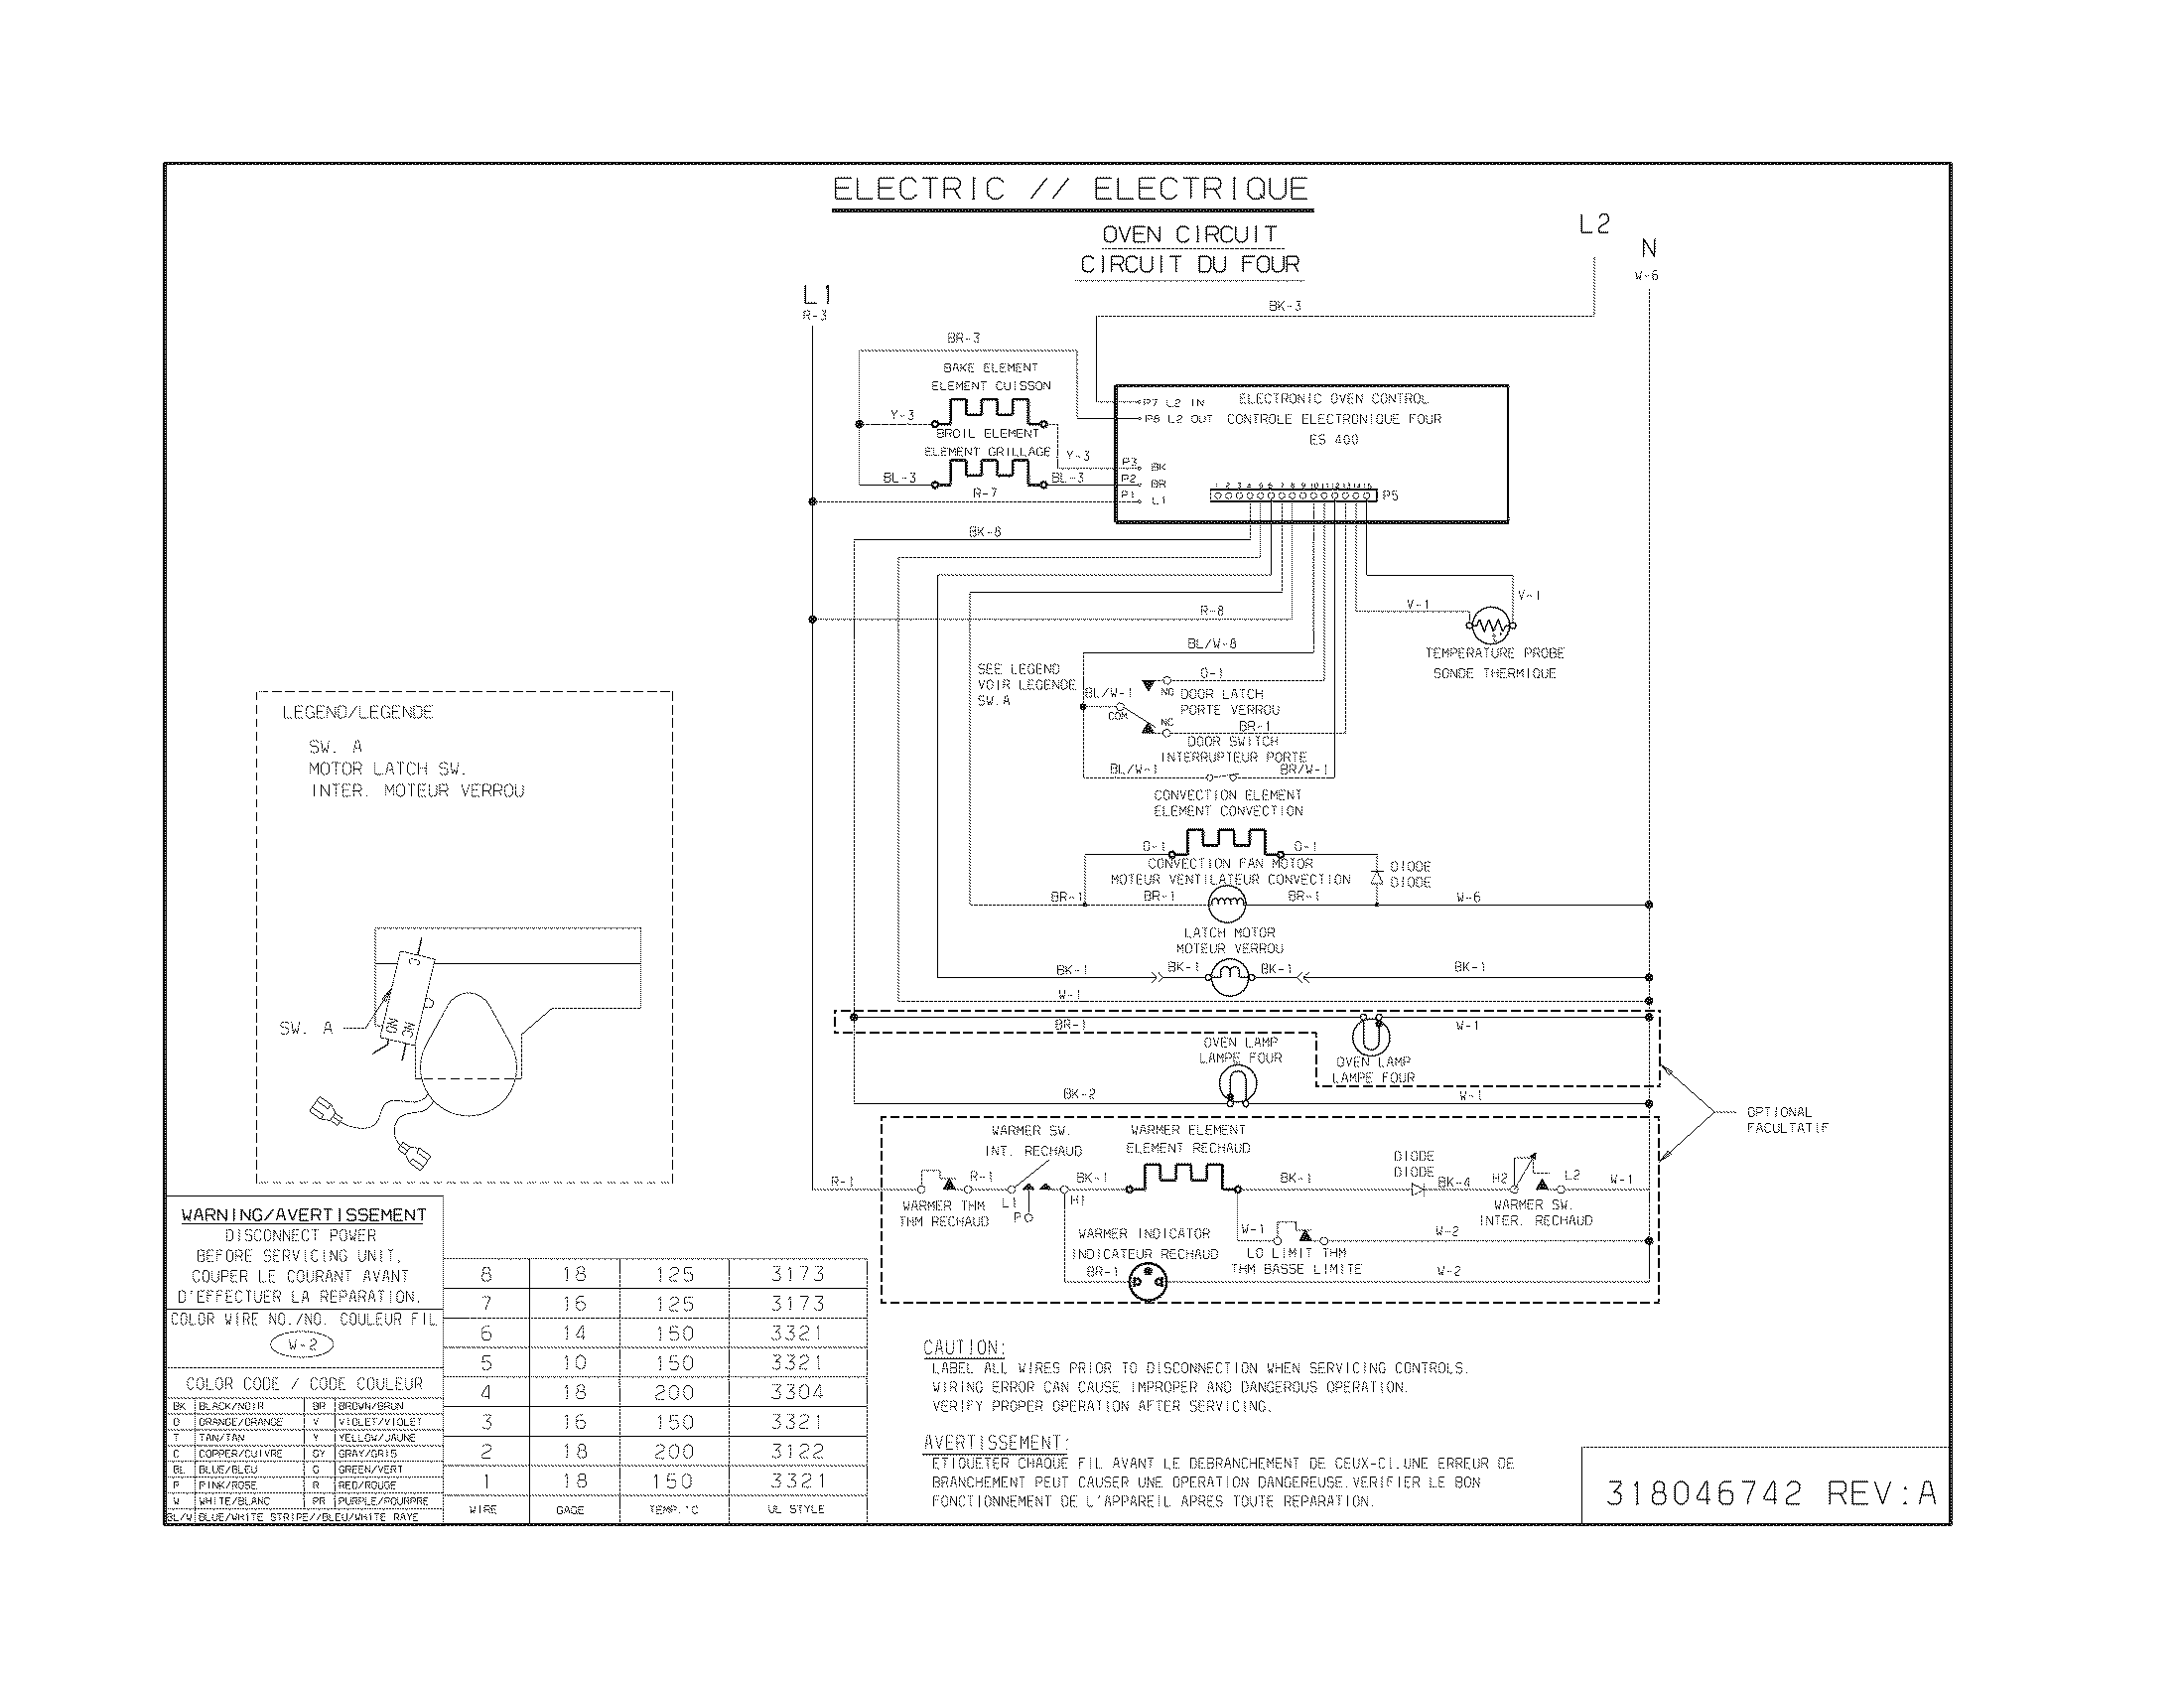 wiring diagram parts frigidaire pglef385cs2 electric range timer stove clocks and frigidaire gallery dryer wiring diagram at soozxer.org